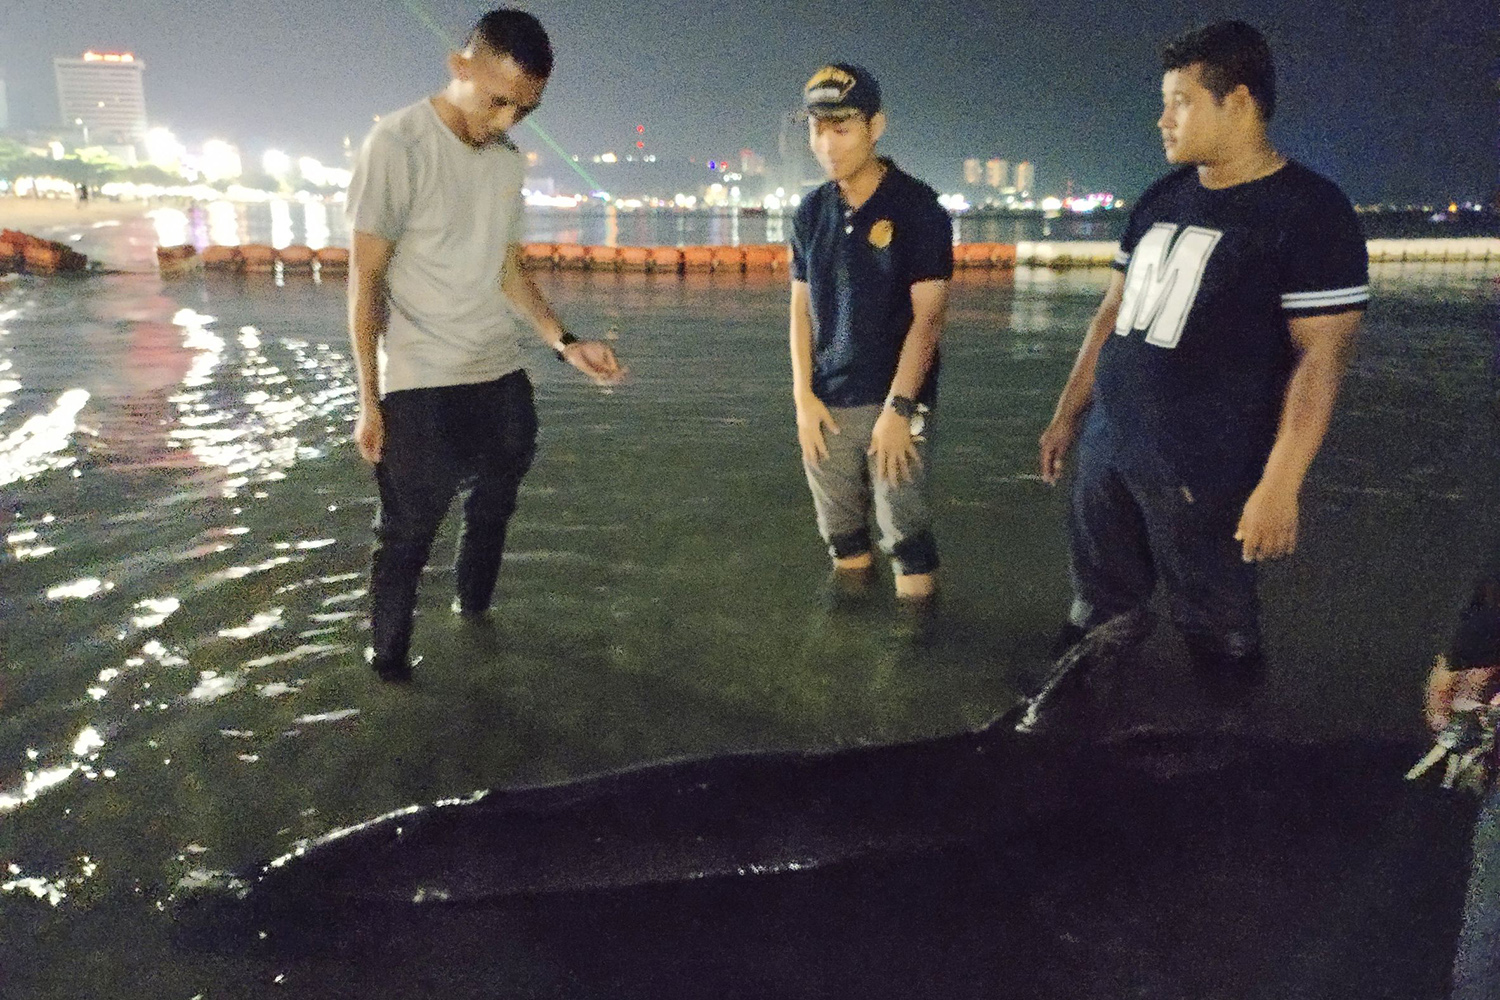 Officials look at a black killer whale washed ashore on a Pattaya beach on Wednesday night before taking it to a naval centre for marine animals. (Photo supplied by Chaiyot Pupattanapong)